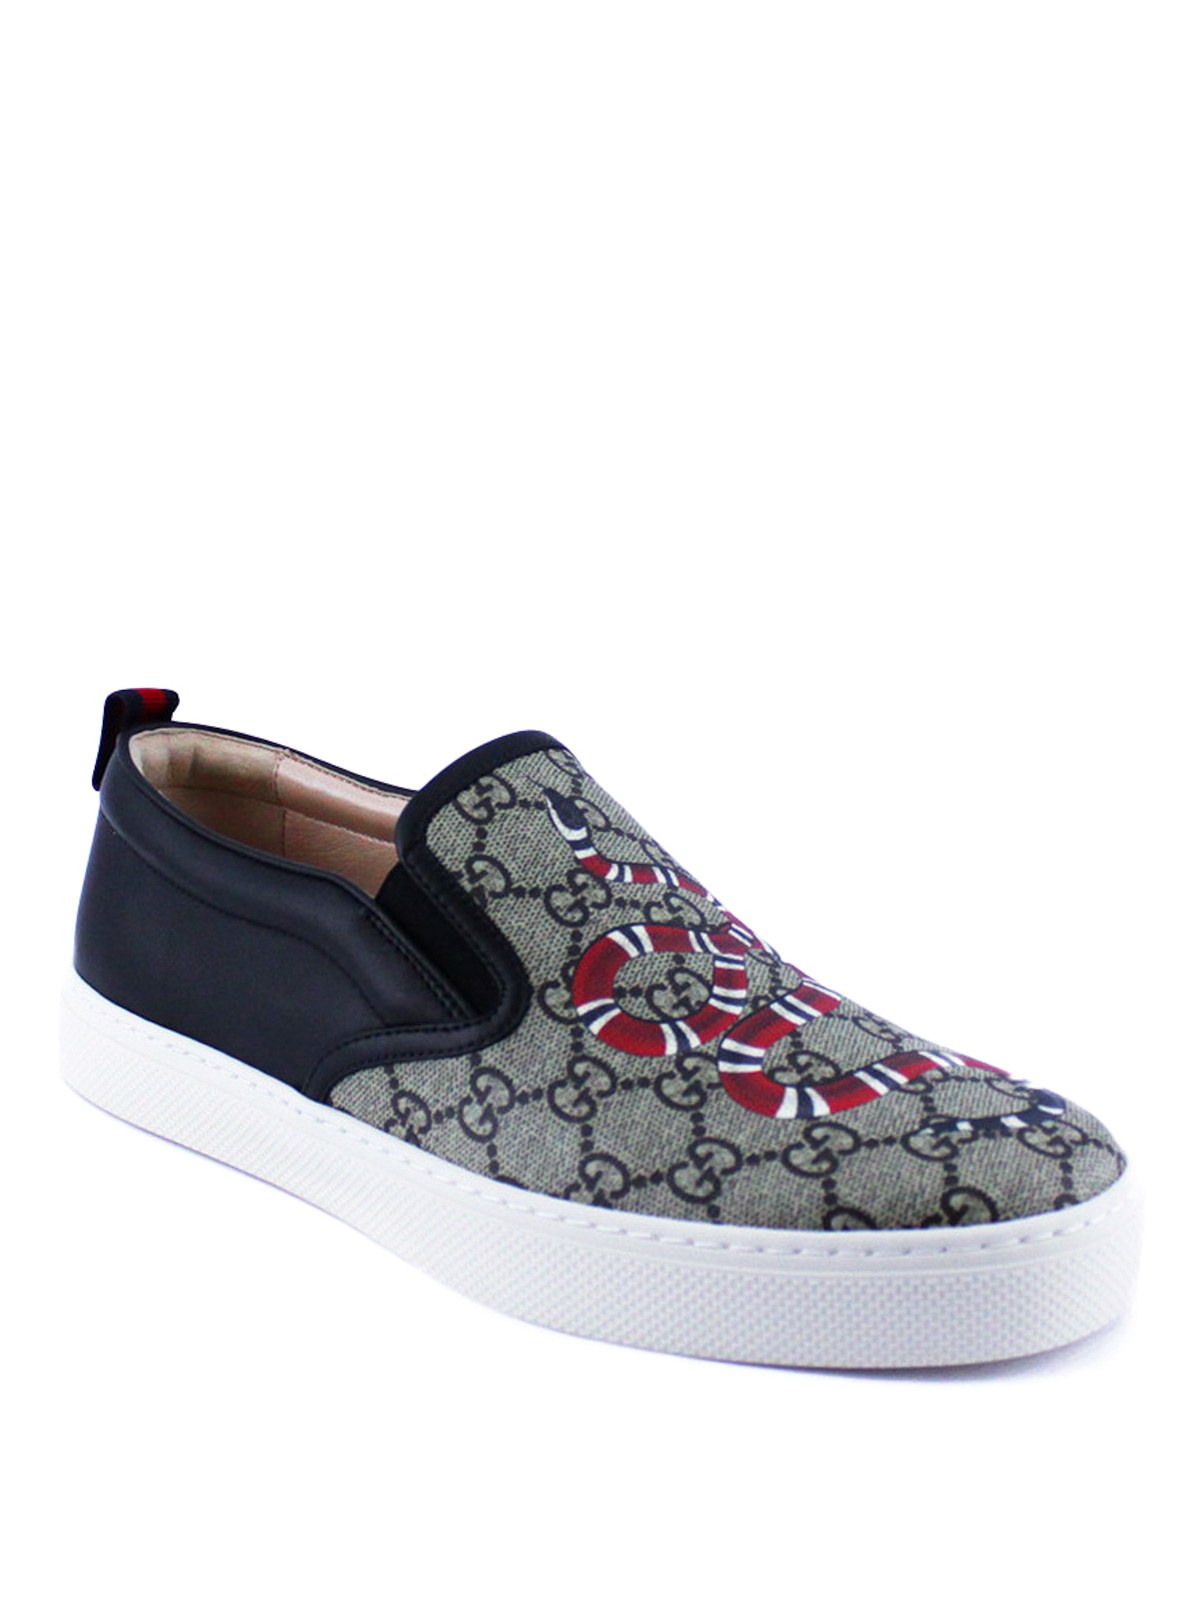 Gucci Trainers Online Snake Print Gg Supreme Slip Ons